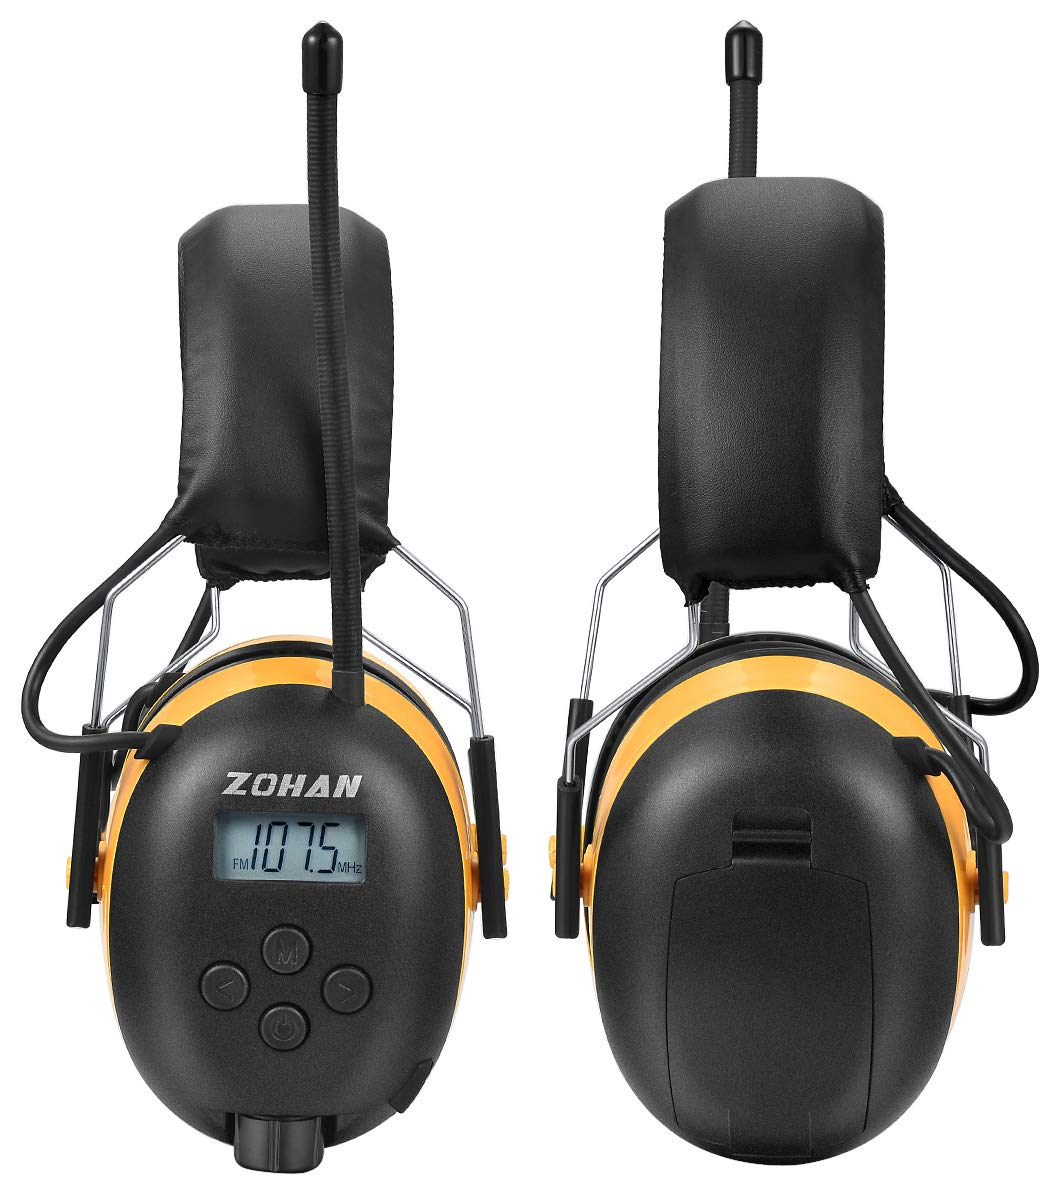 ZOHAN Digital AM/FM/MP3 Radio Earmuff, Noise Reduction Hearing Protector For Mowing, Snowmobiling, Sporting Events (Yellow) by ZOHAN (Image #4)